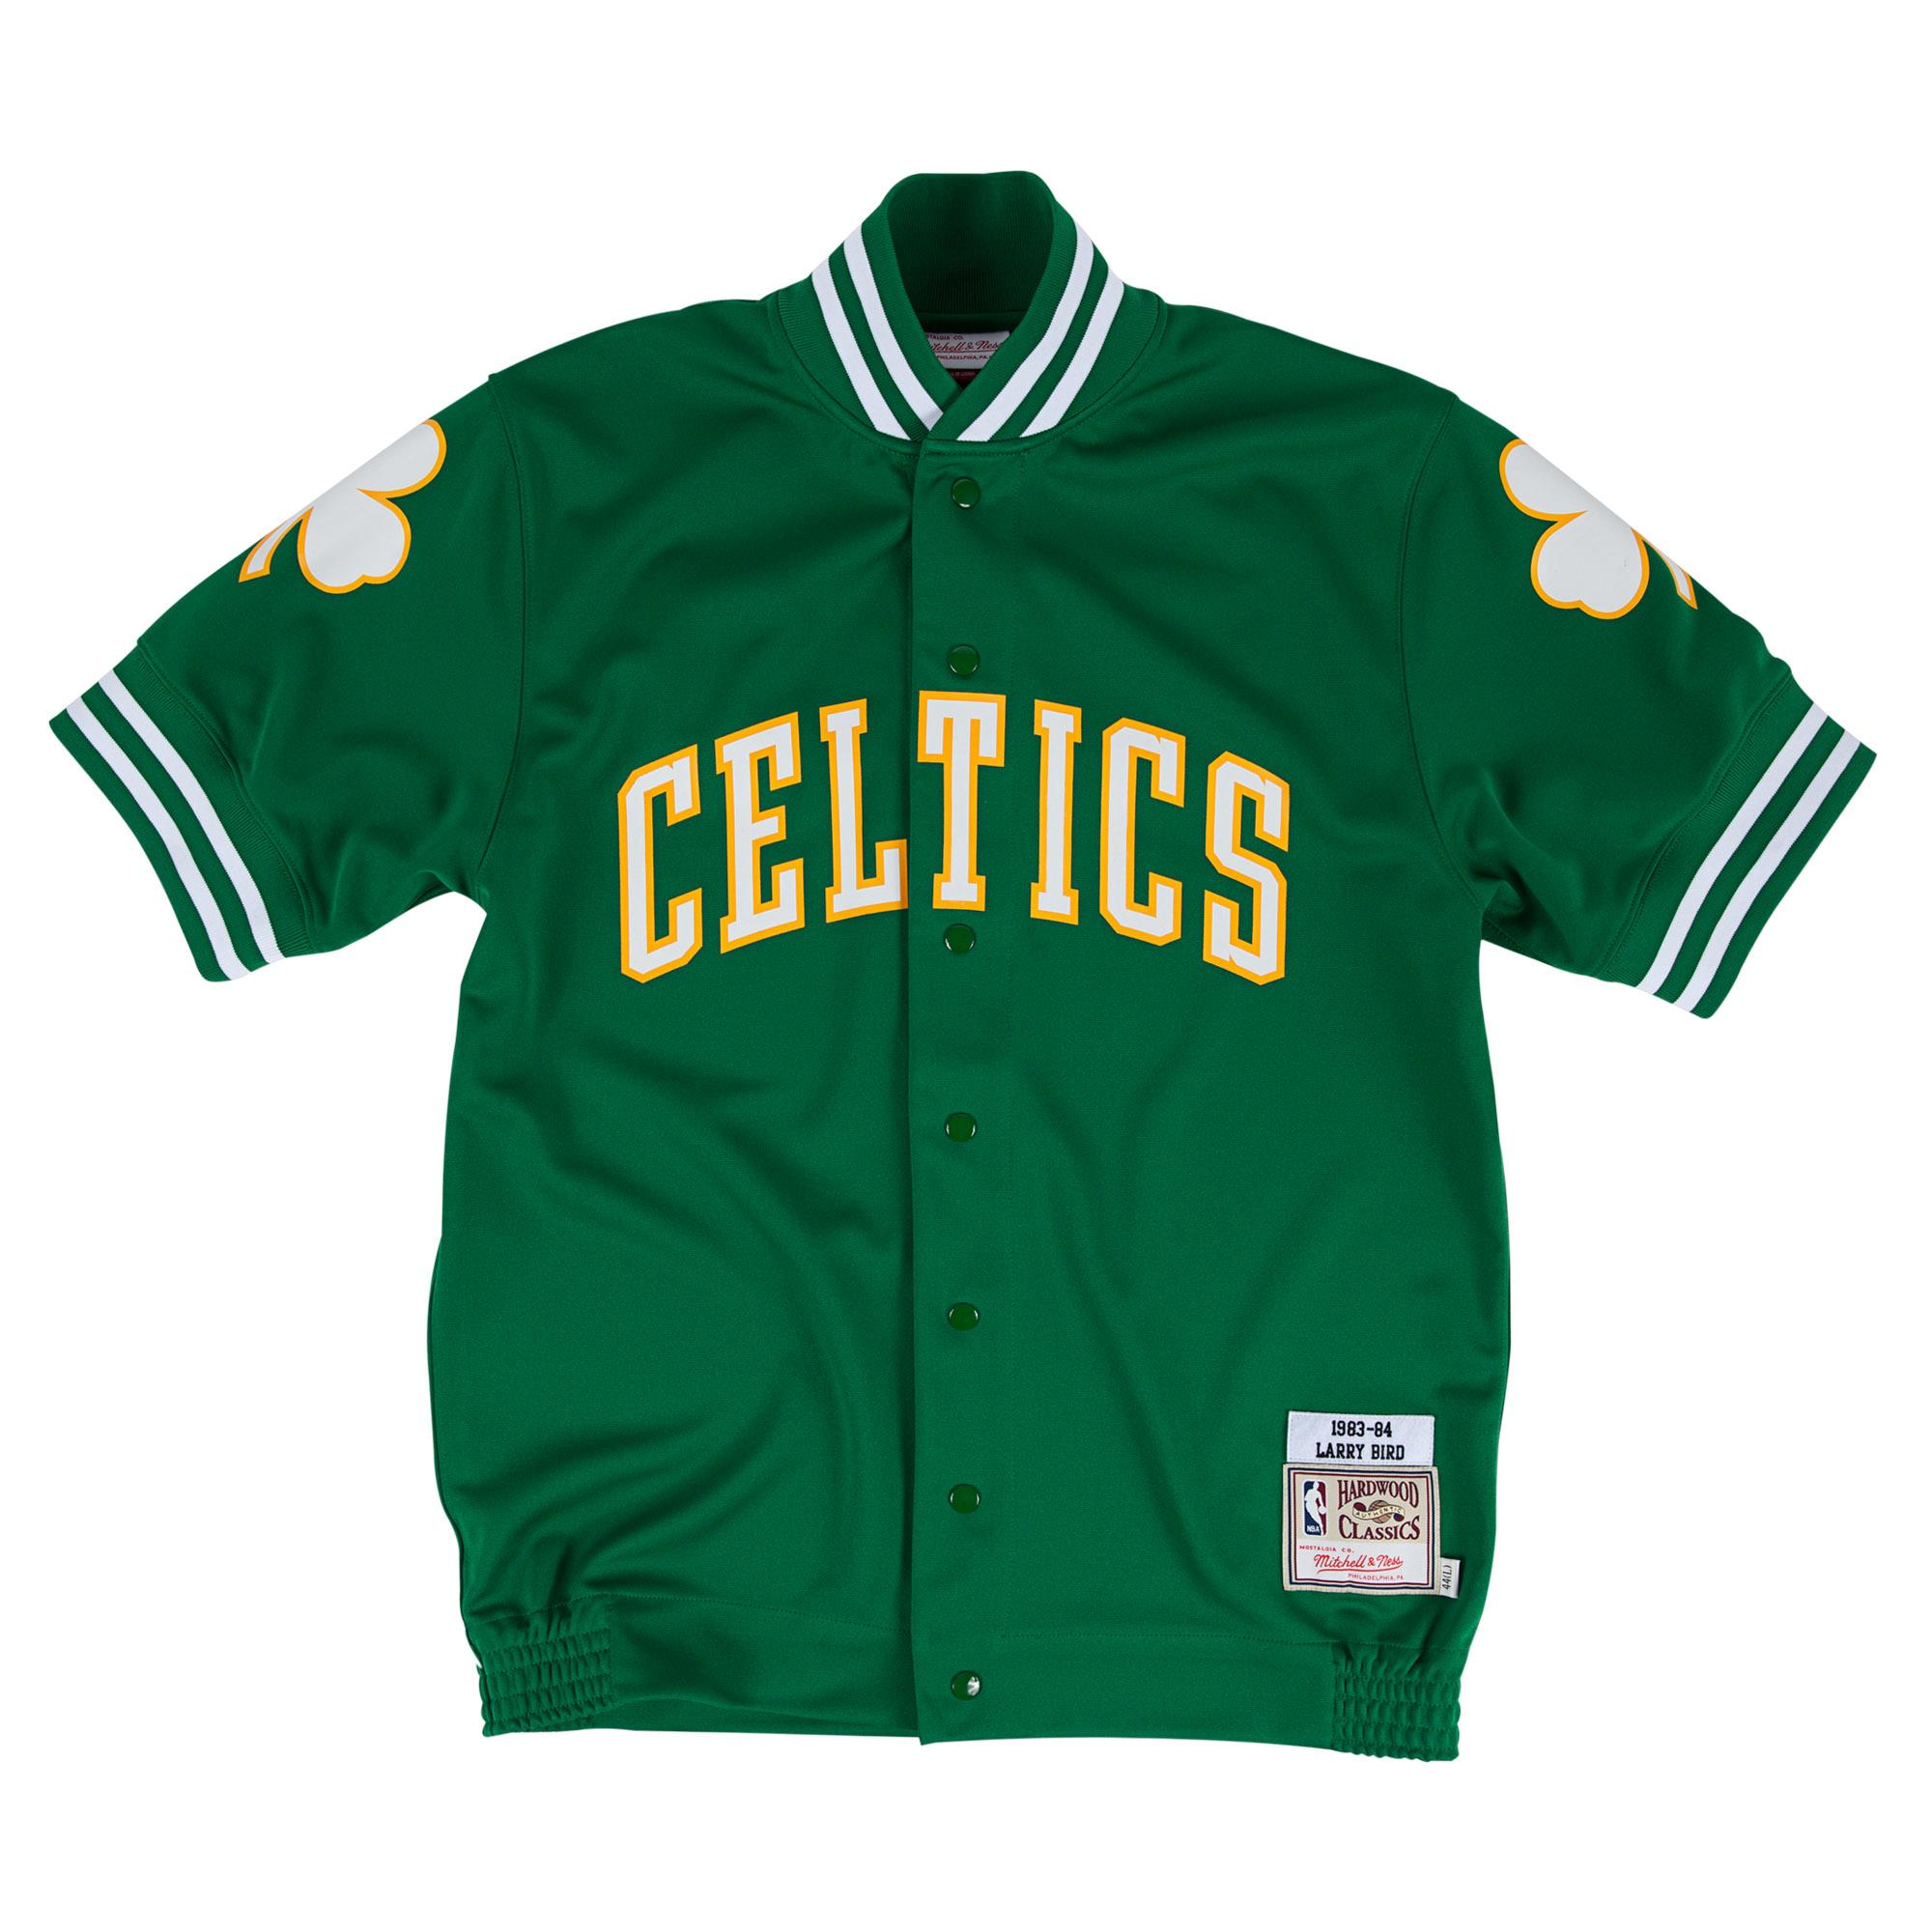 outlet store dc225 ee223 Mitchell & Ness | Larry Bird 1983-84 Boston Celtics ...